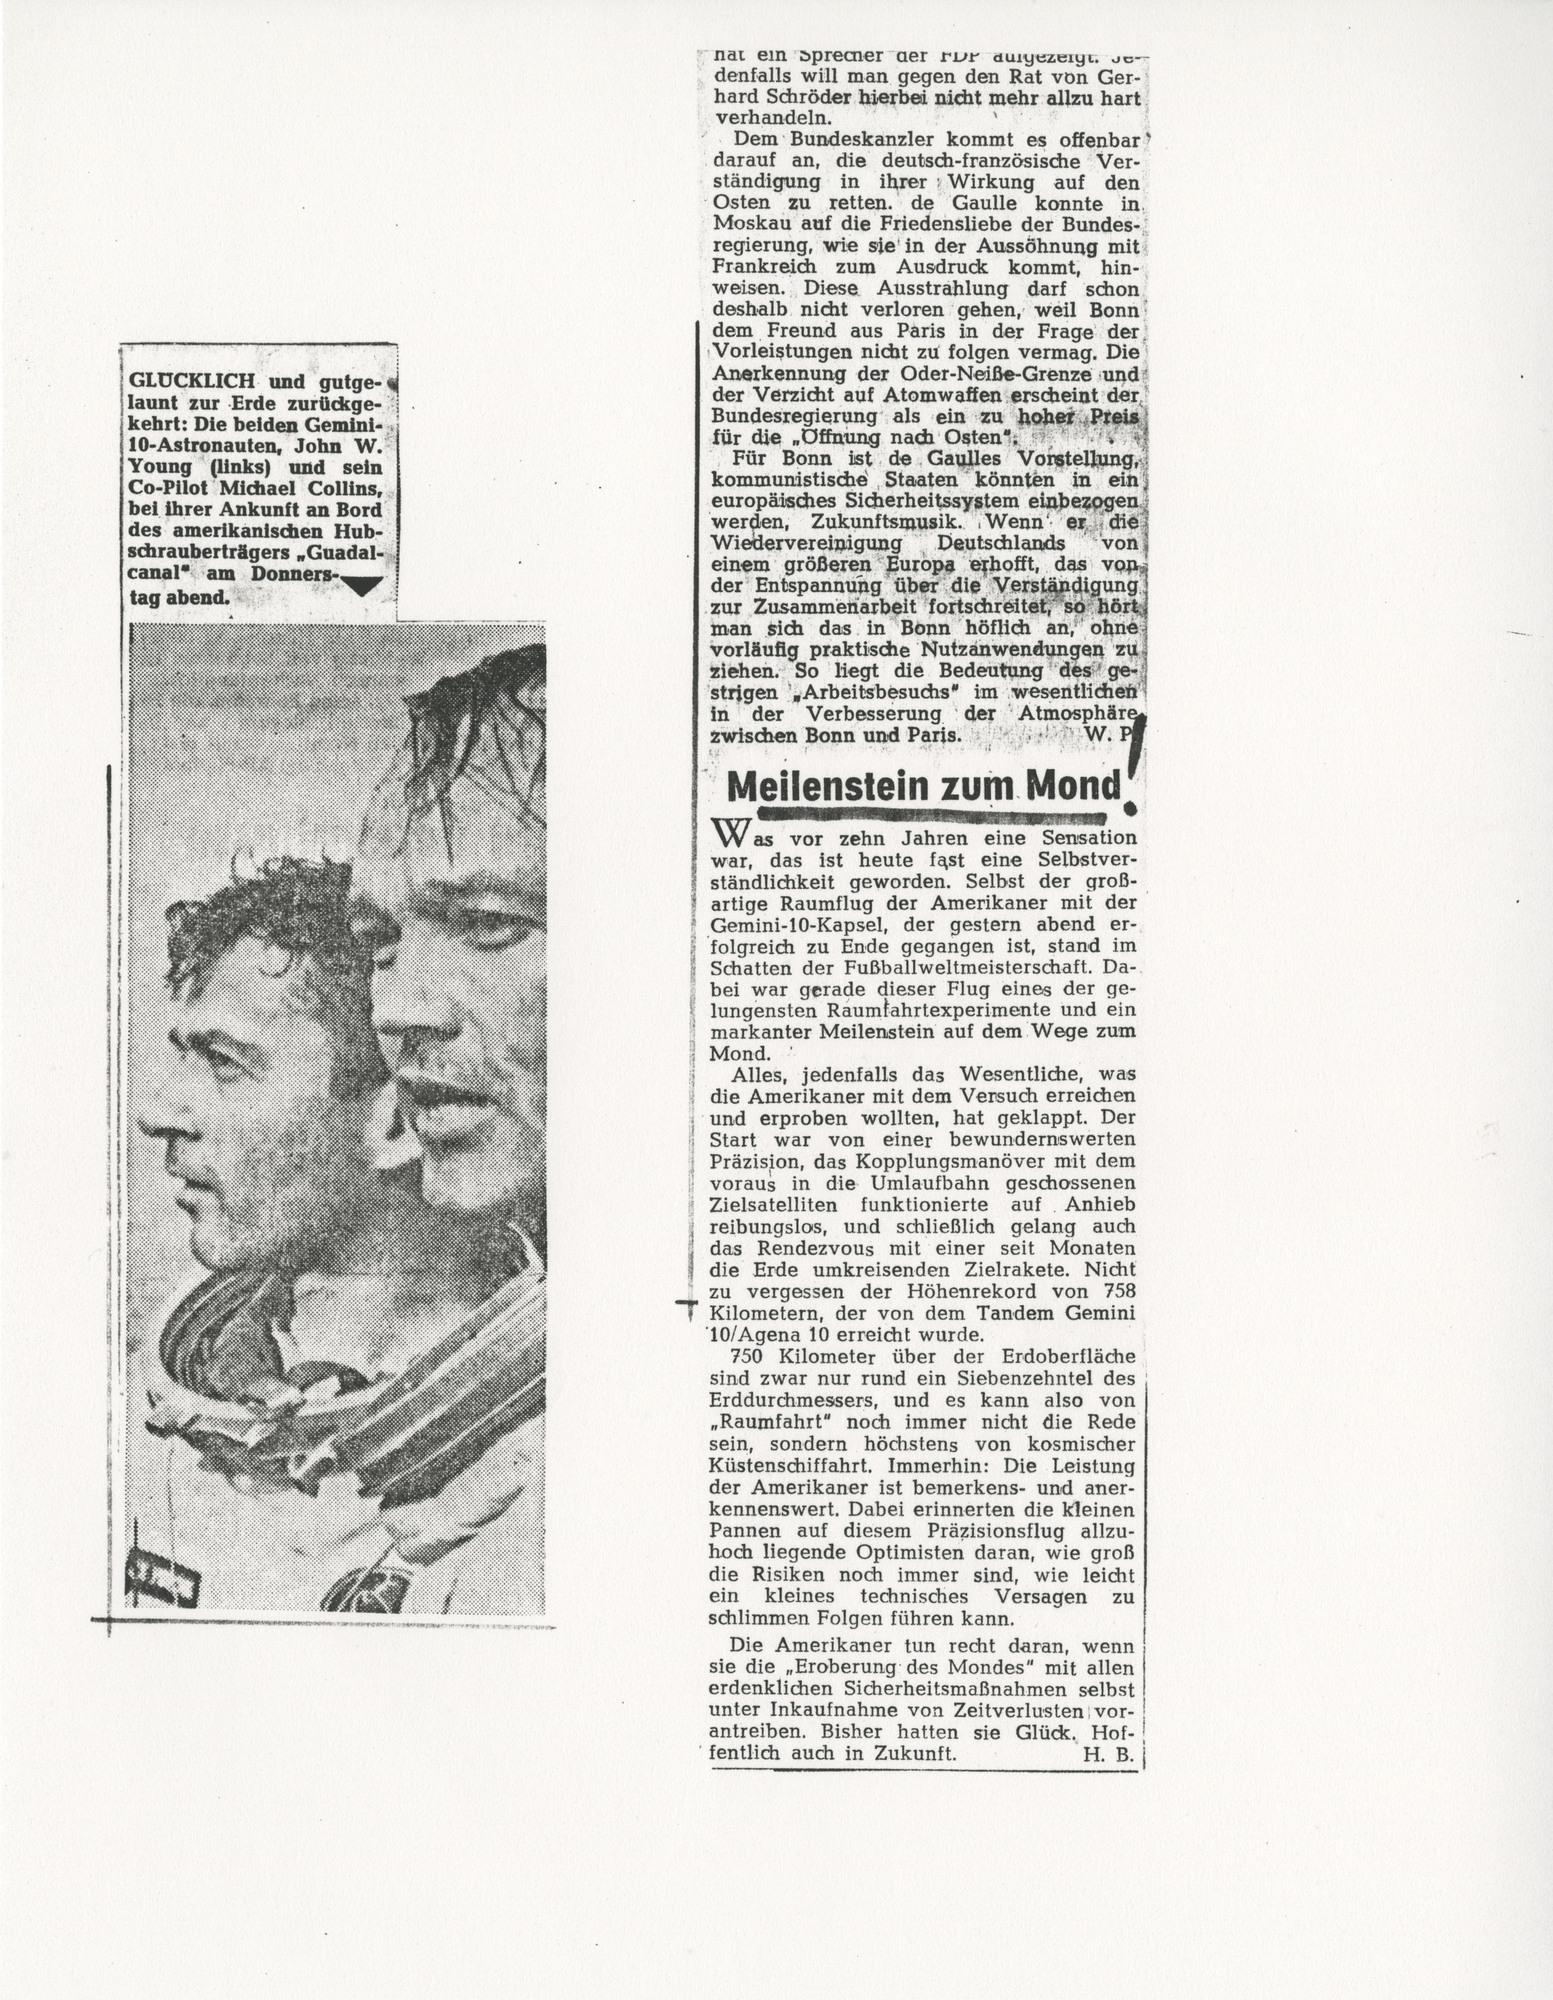 http://spec.lib.vt.edu/pickup/Omeka_upload/Ms1989-029_B07_F3_Clippings_1966_ND_04.jpg